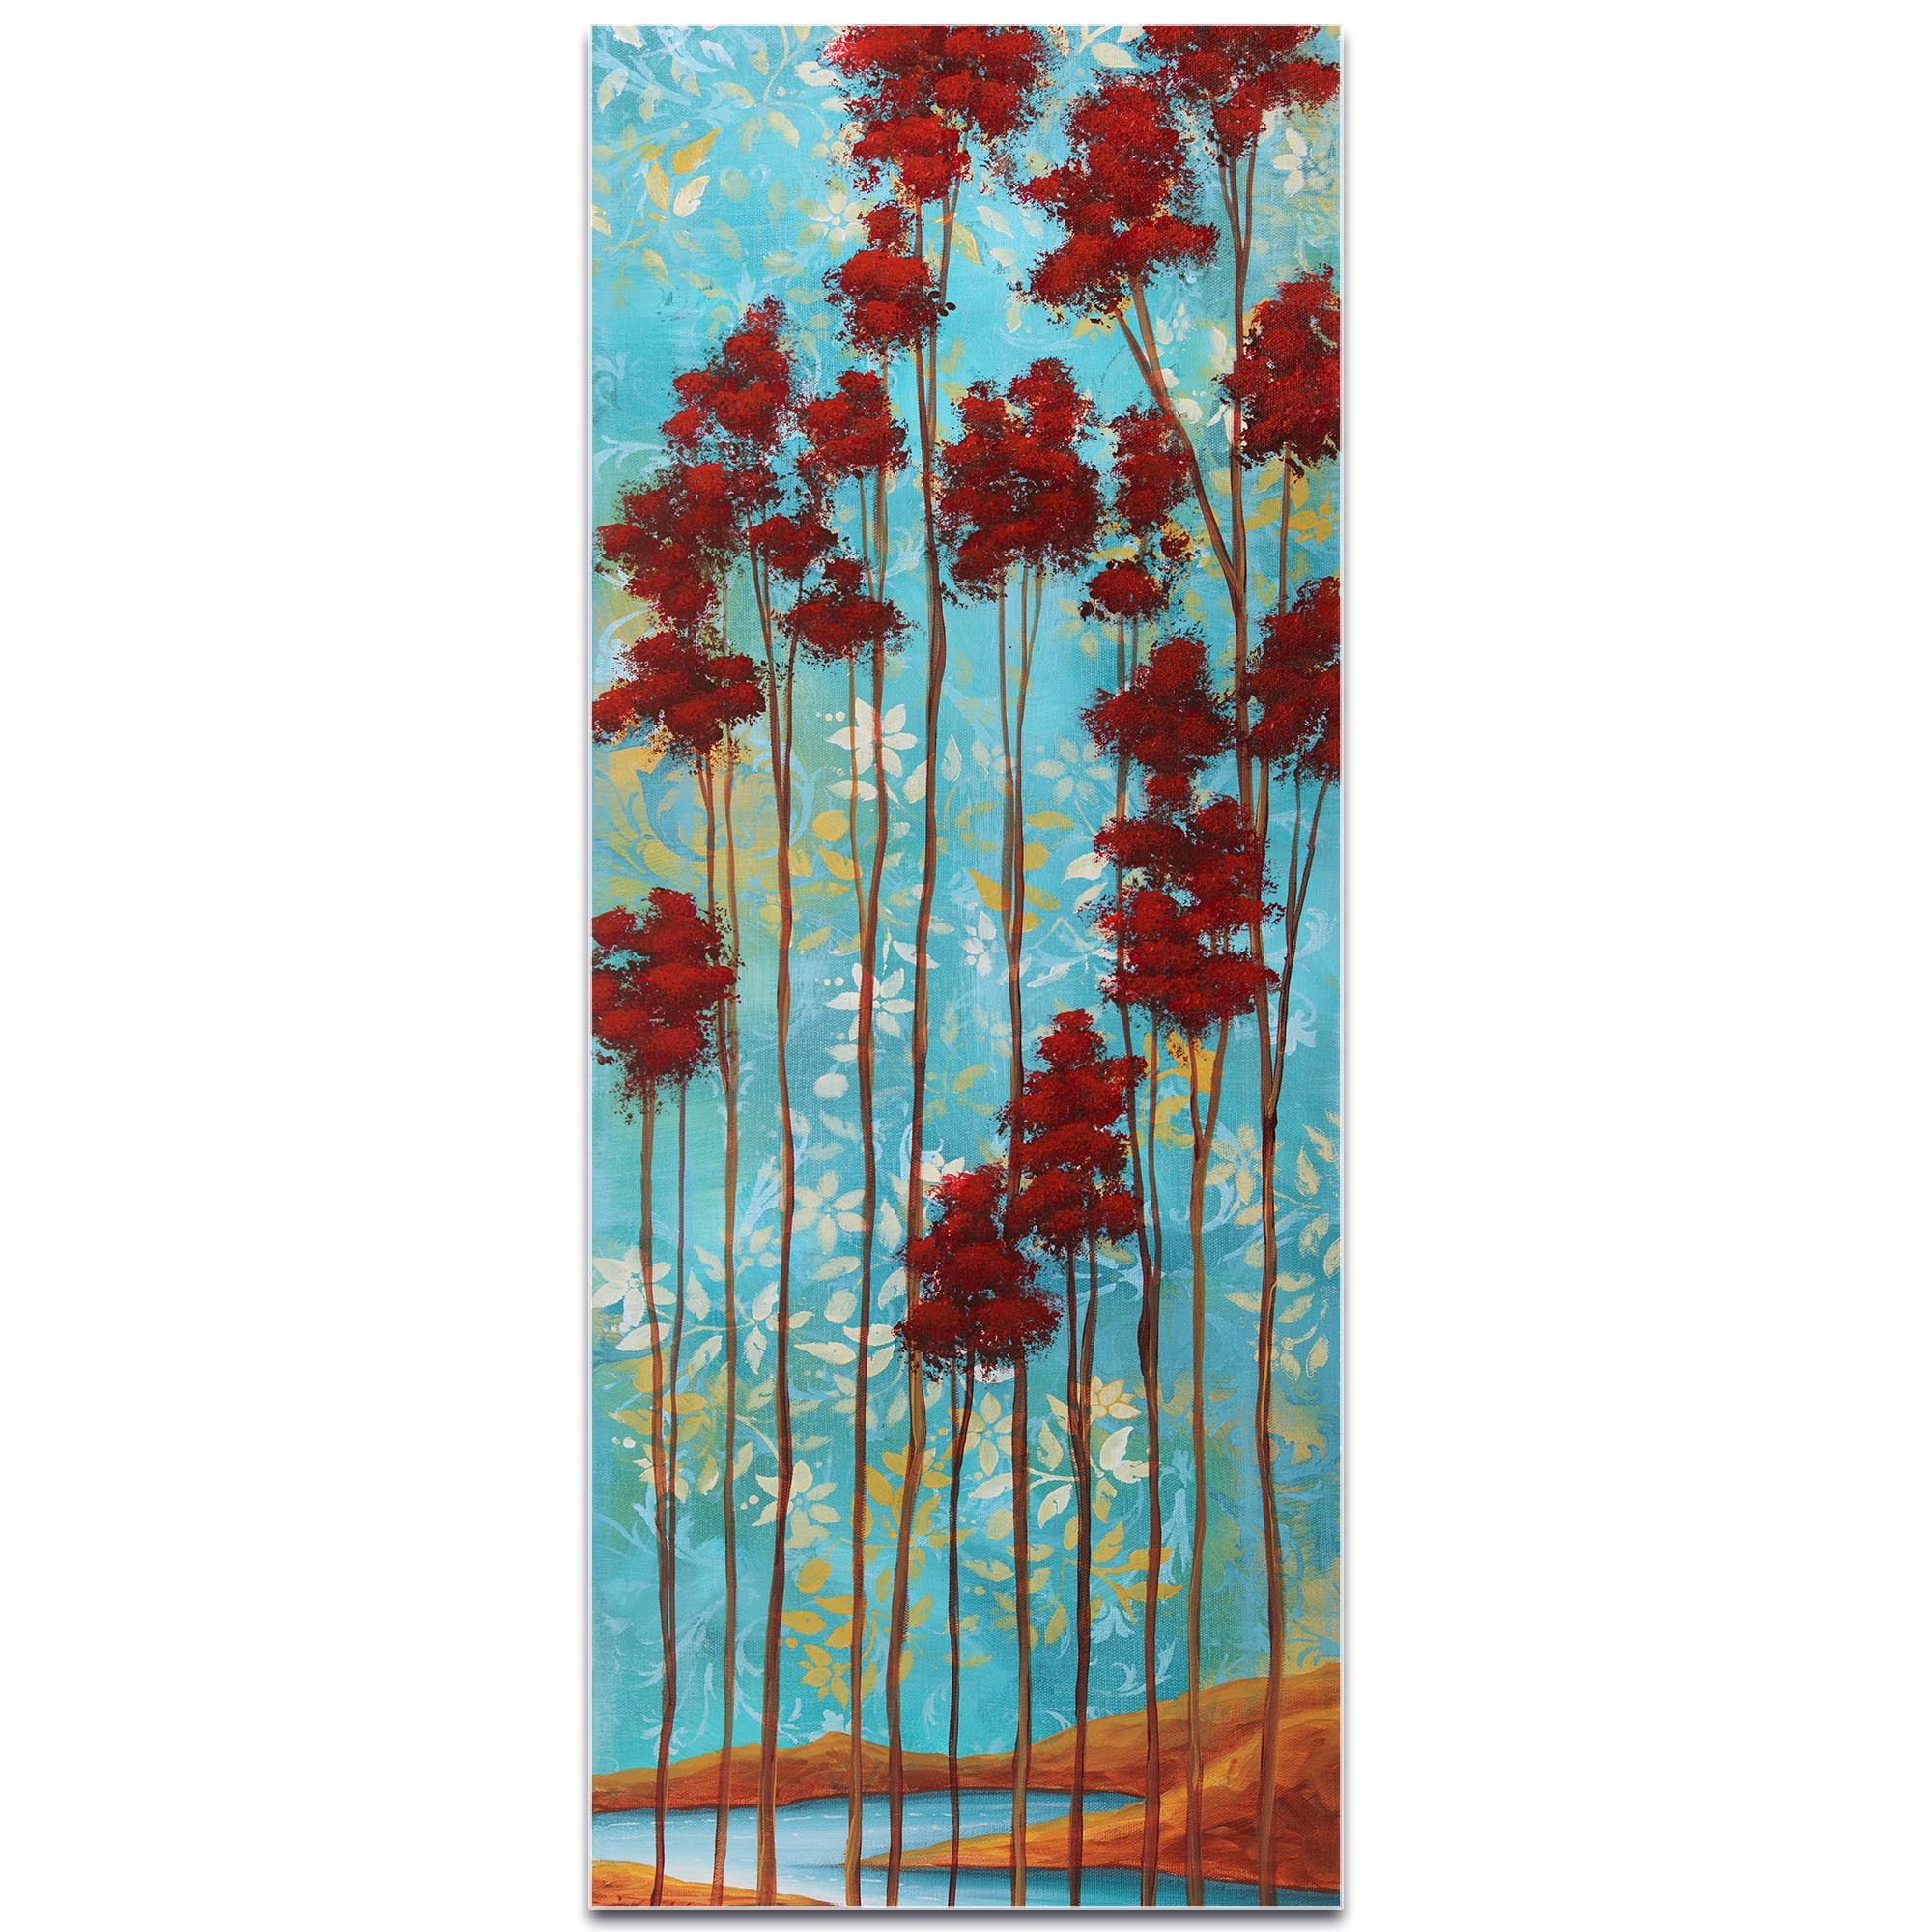 Abstract Tree Art 'Floating Dreams v1' - Landscape Painting on Metal or Acrylic - Image 2